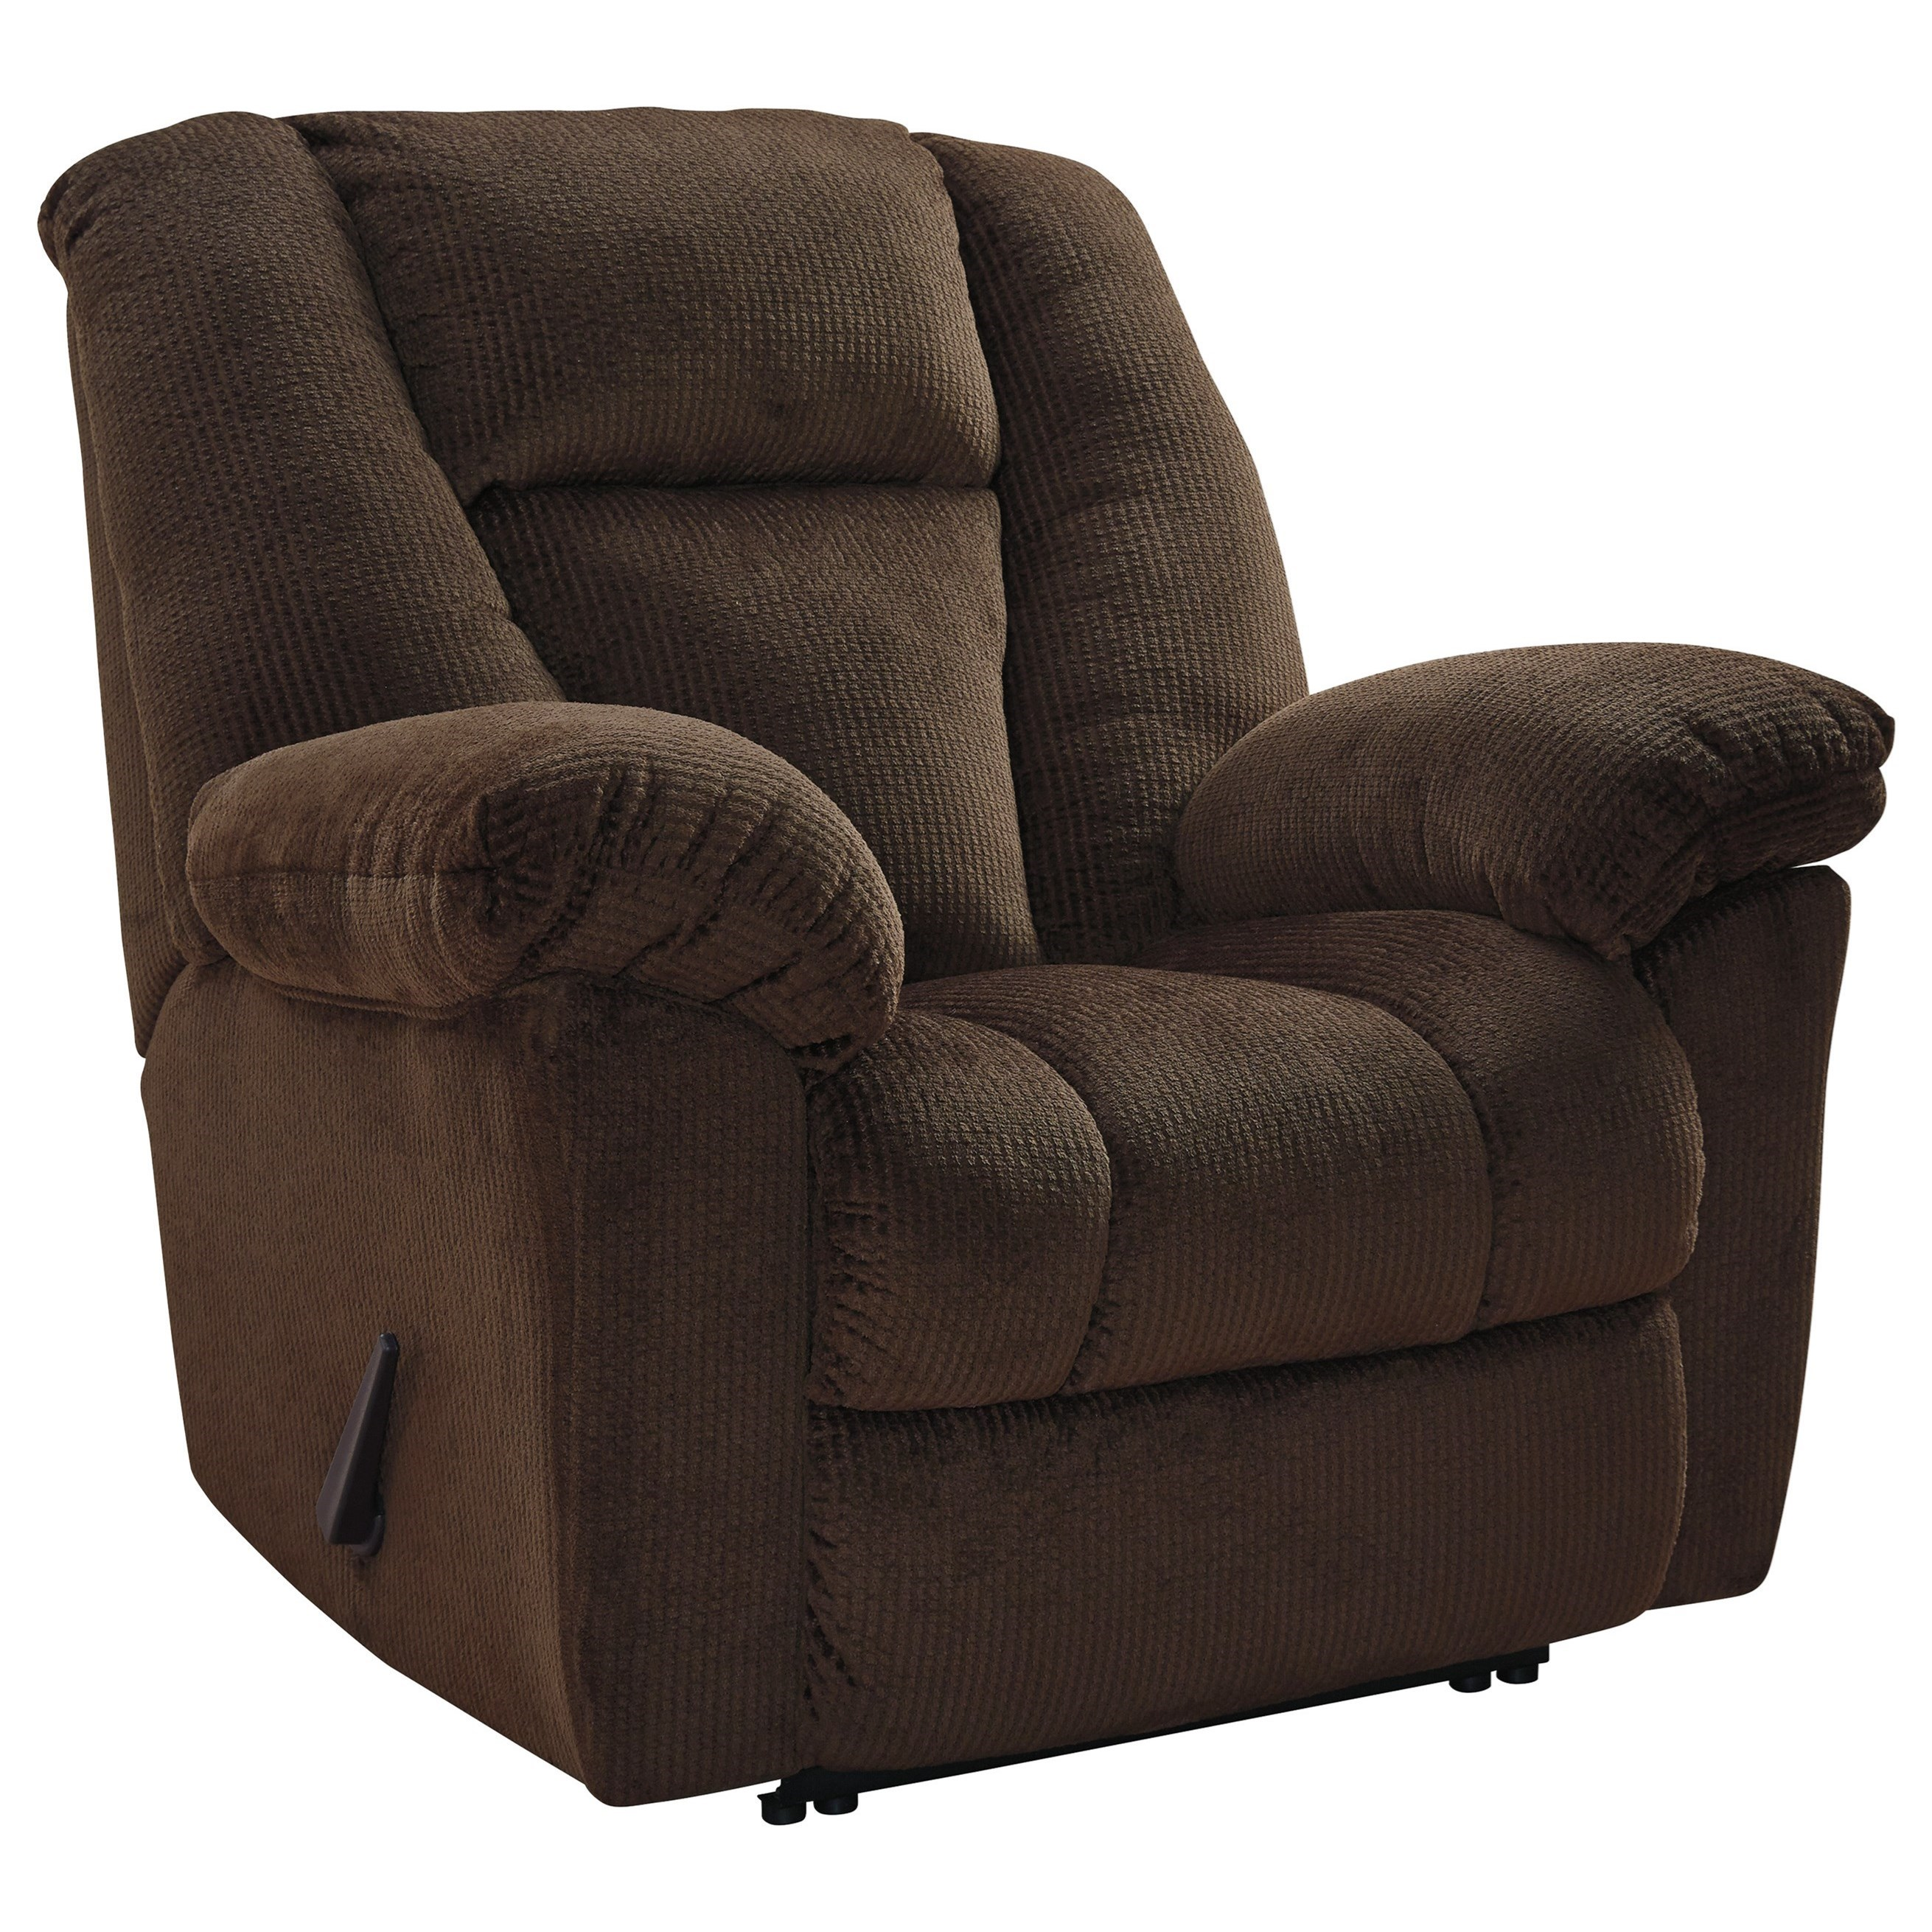 Signature Design By Ashley Nimmons Casual Wall Saver Recliner Rife 39 S Home Furniture Three